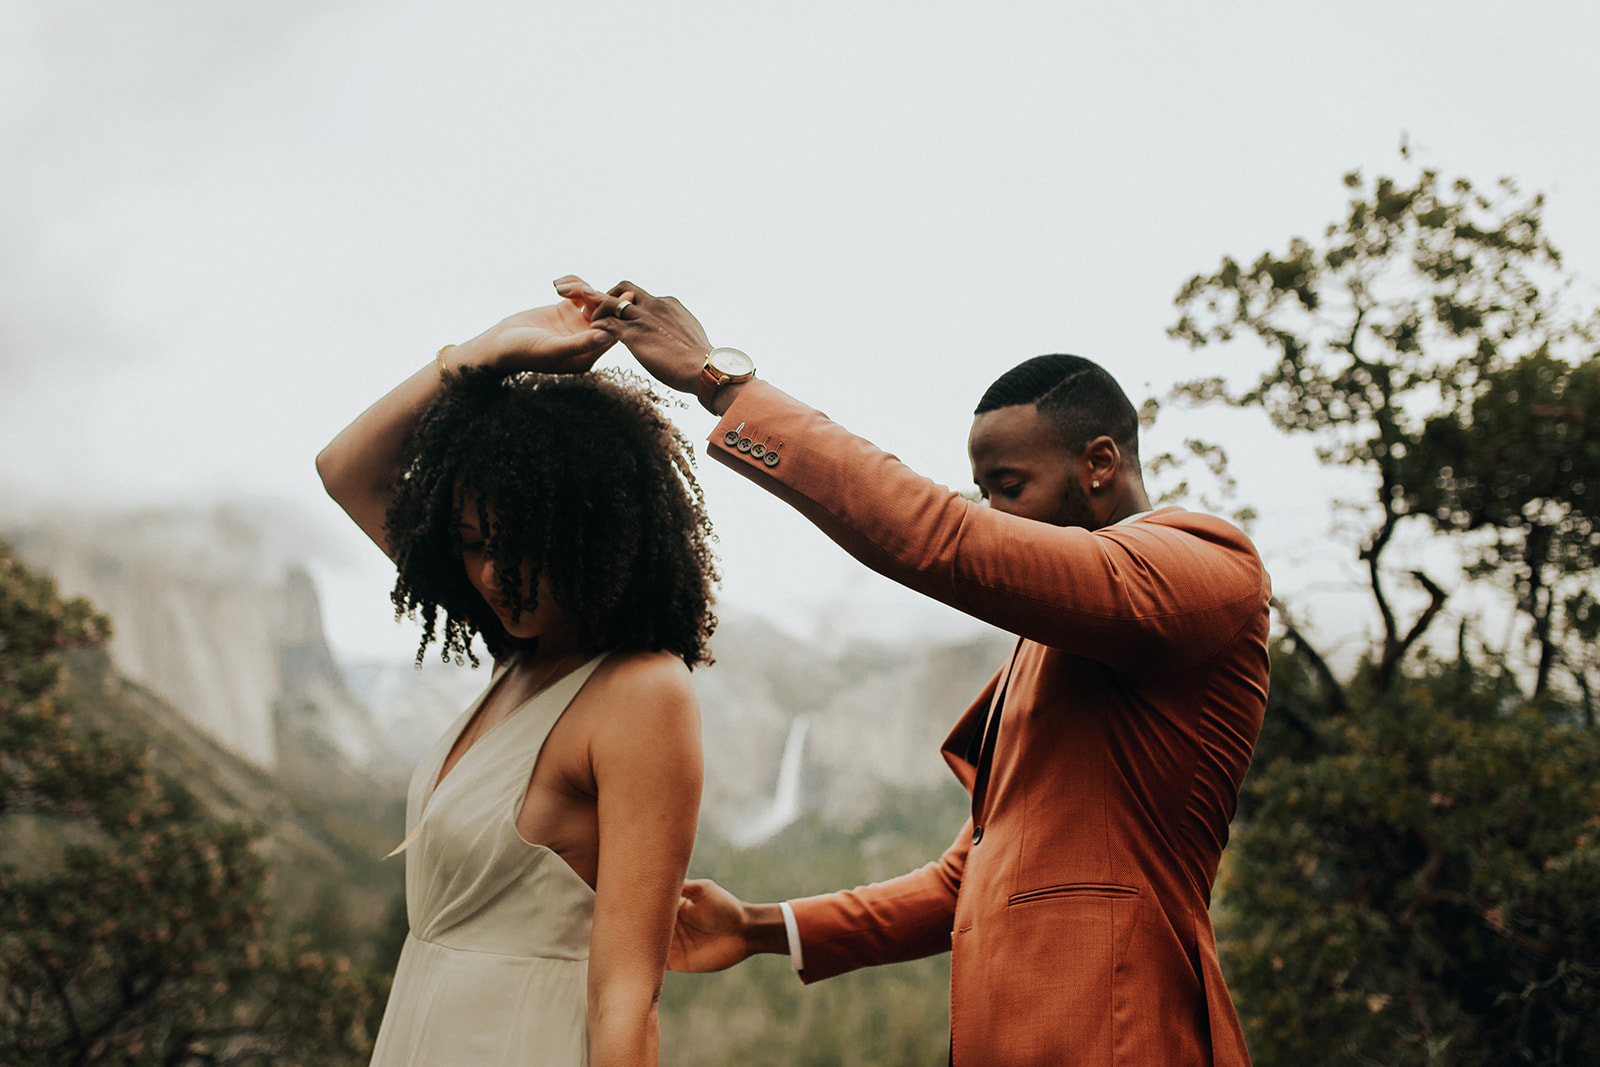 Yosemite_Elopement_Hannah_Alena_Photo_Portland_Wedding_Photographer-107.jpg